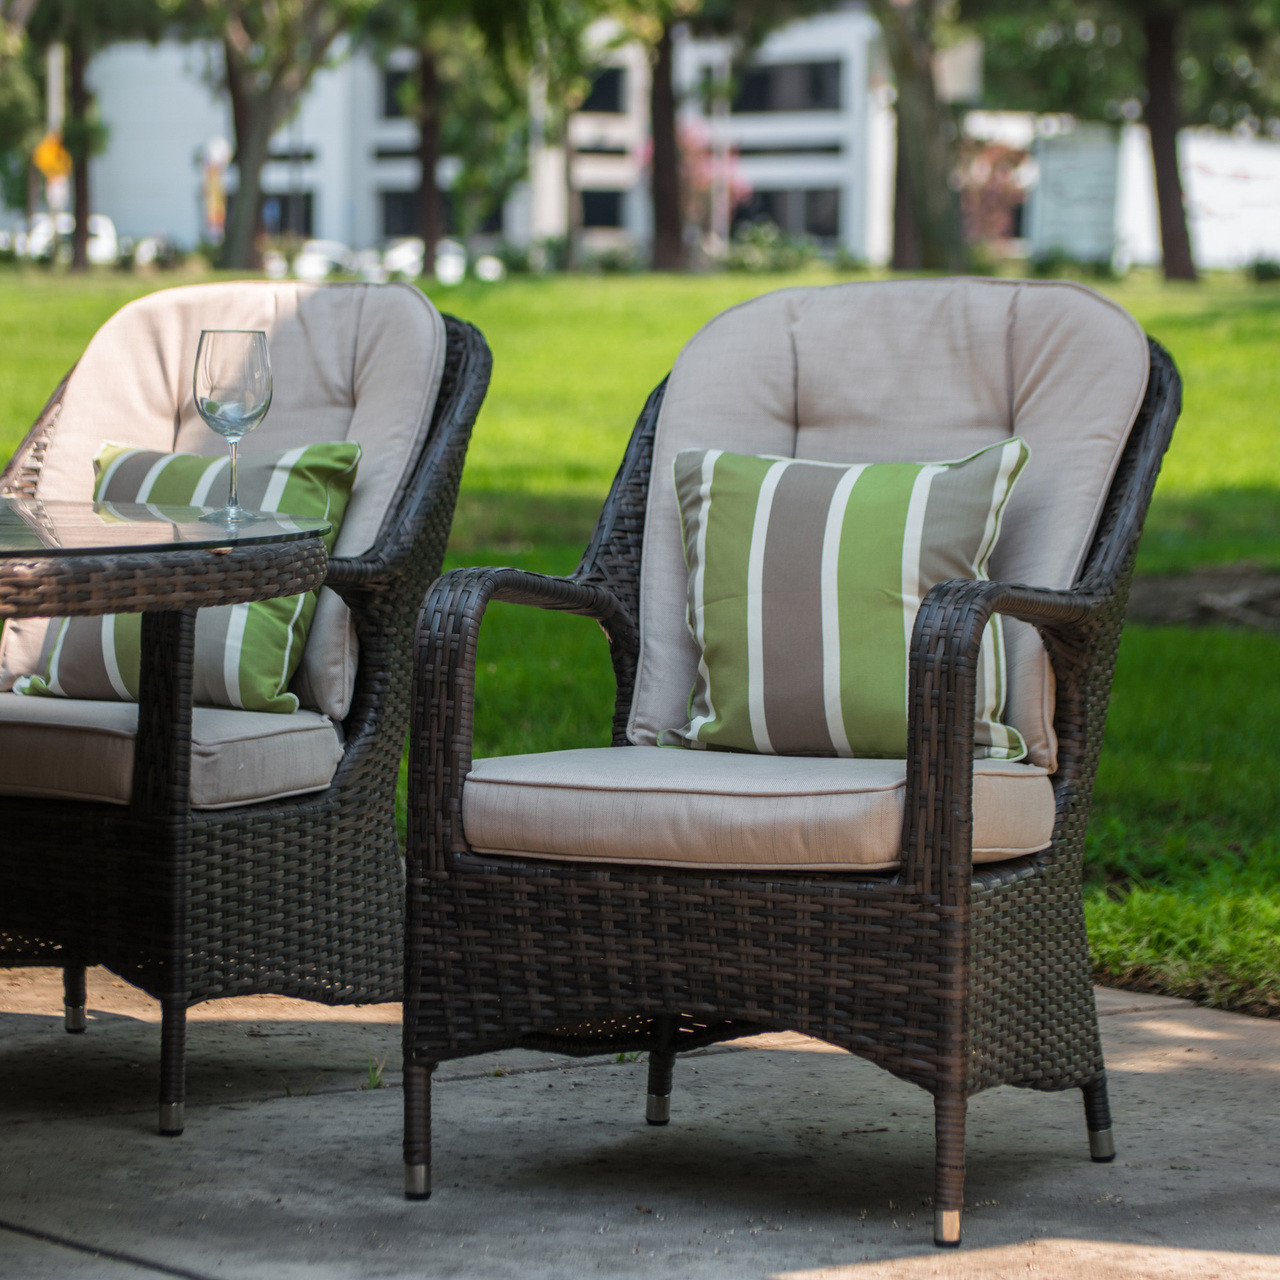 Awesome Direct Wicker Liberatore Lounge Chair With Cushions 8 Pcs Pabps2019 Chair Design Images Pabps2019Com